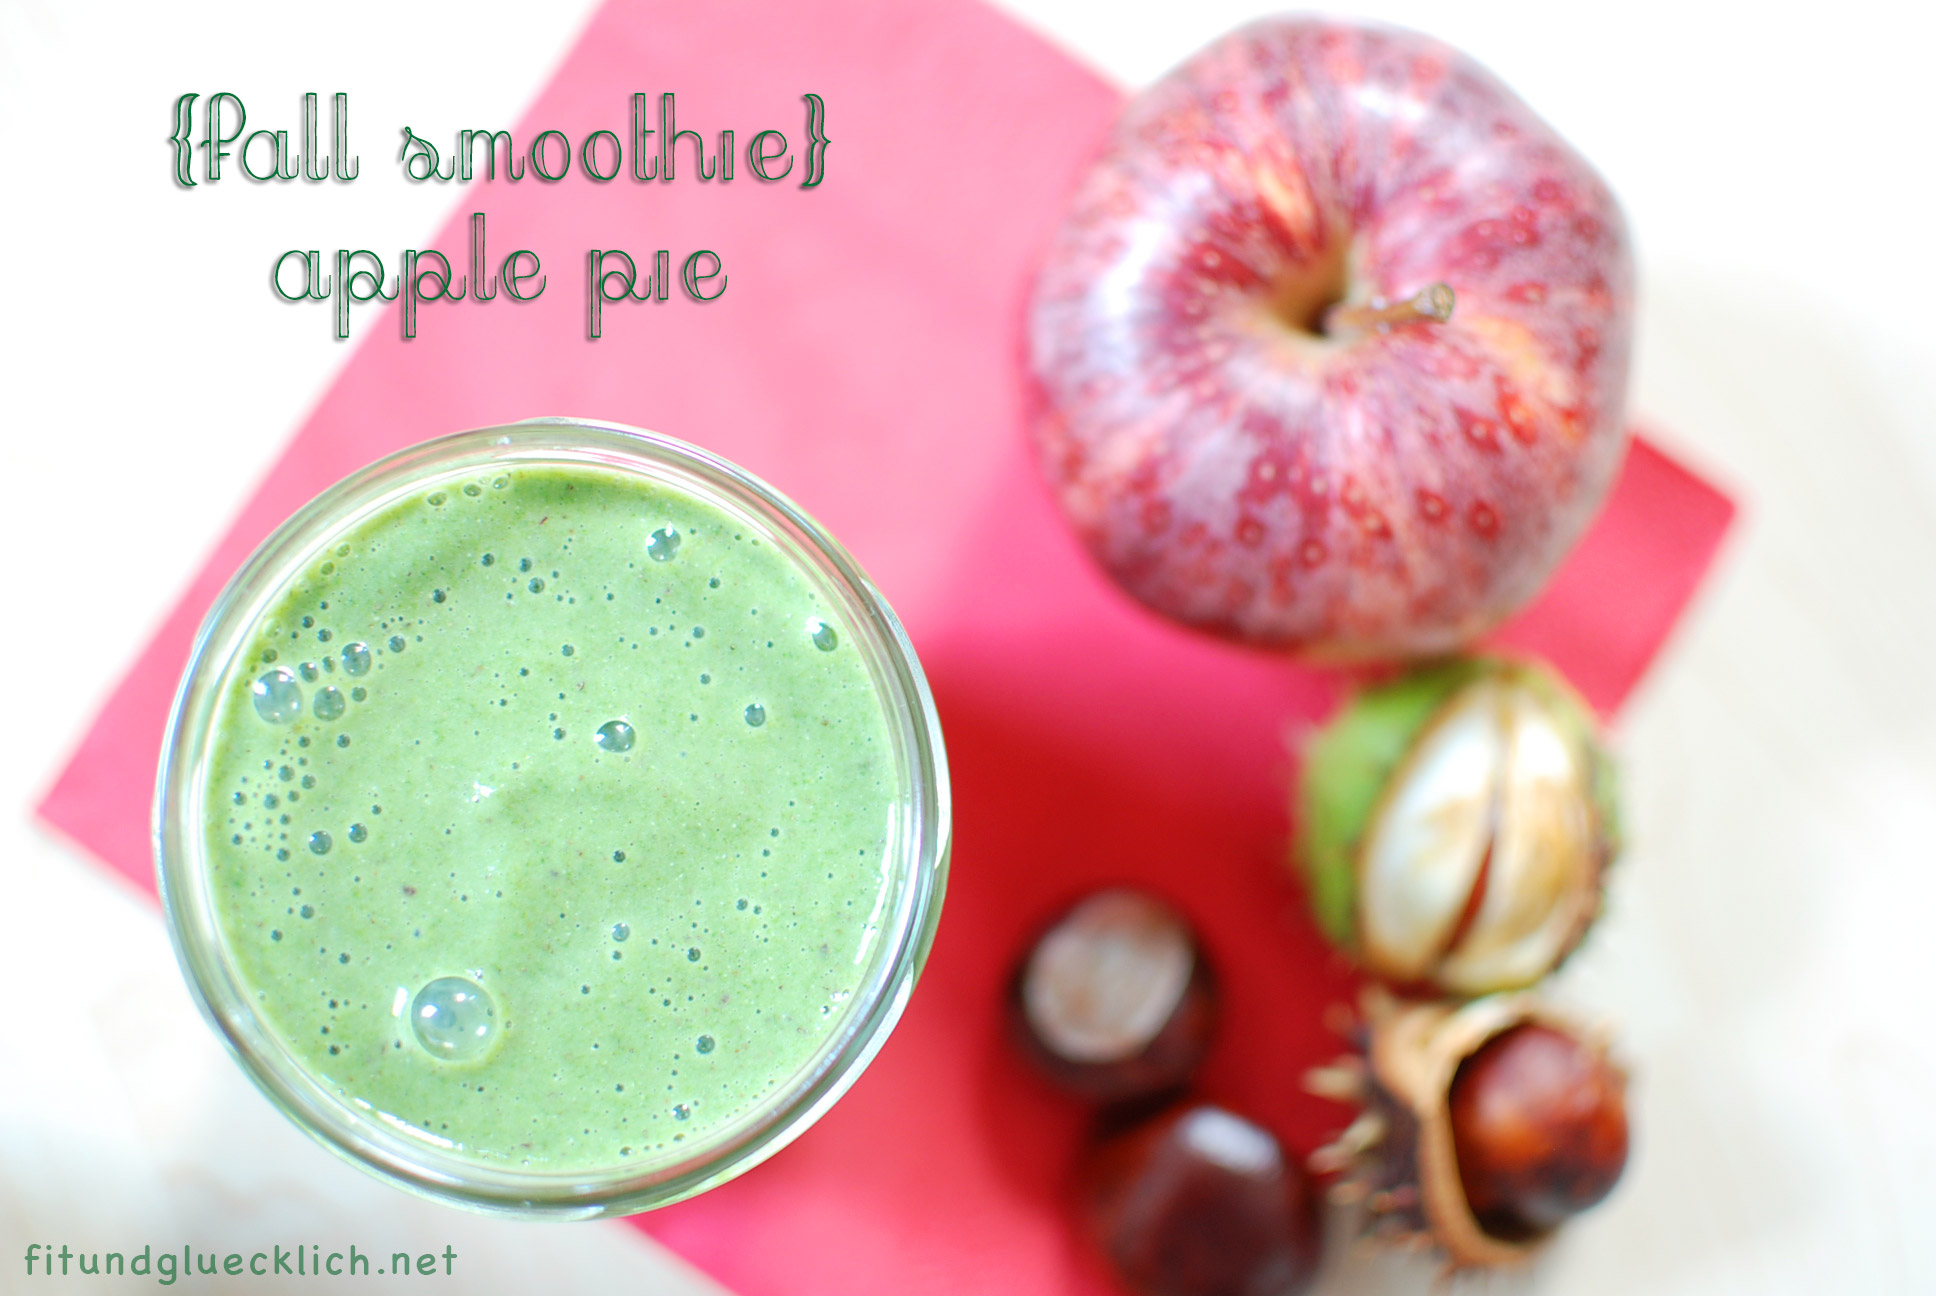 smoothie, Apfelstrudel, apple pie, fitundgluecklich.net